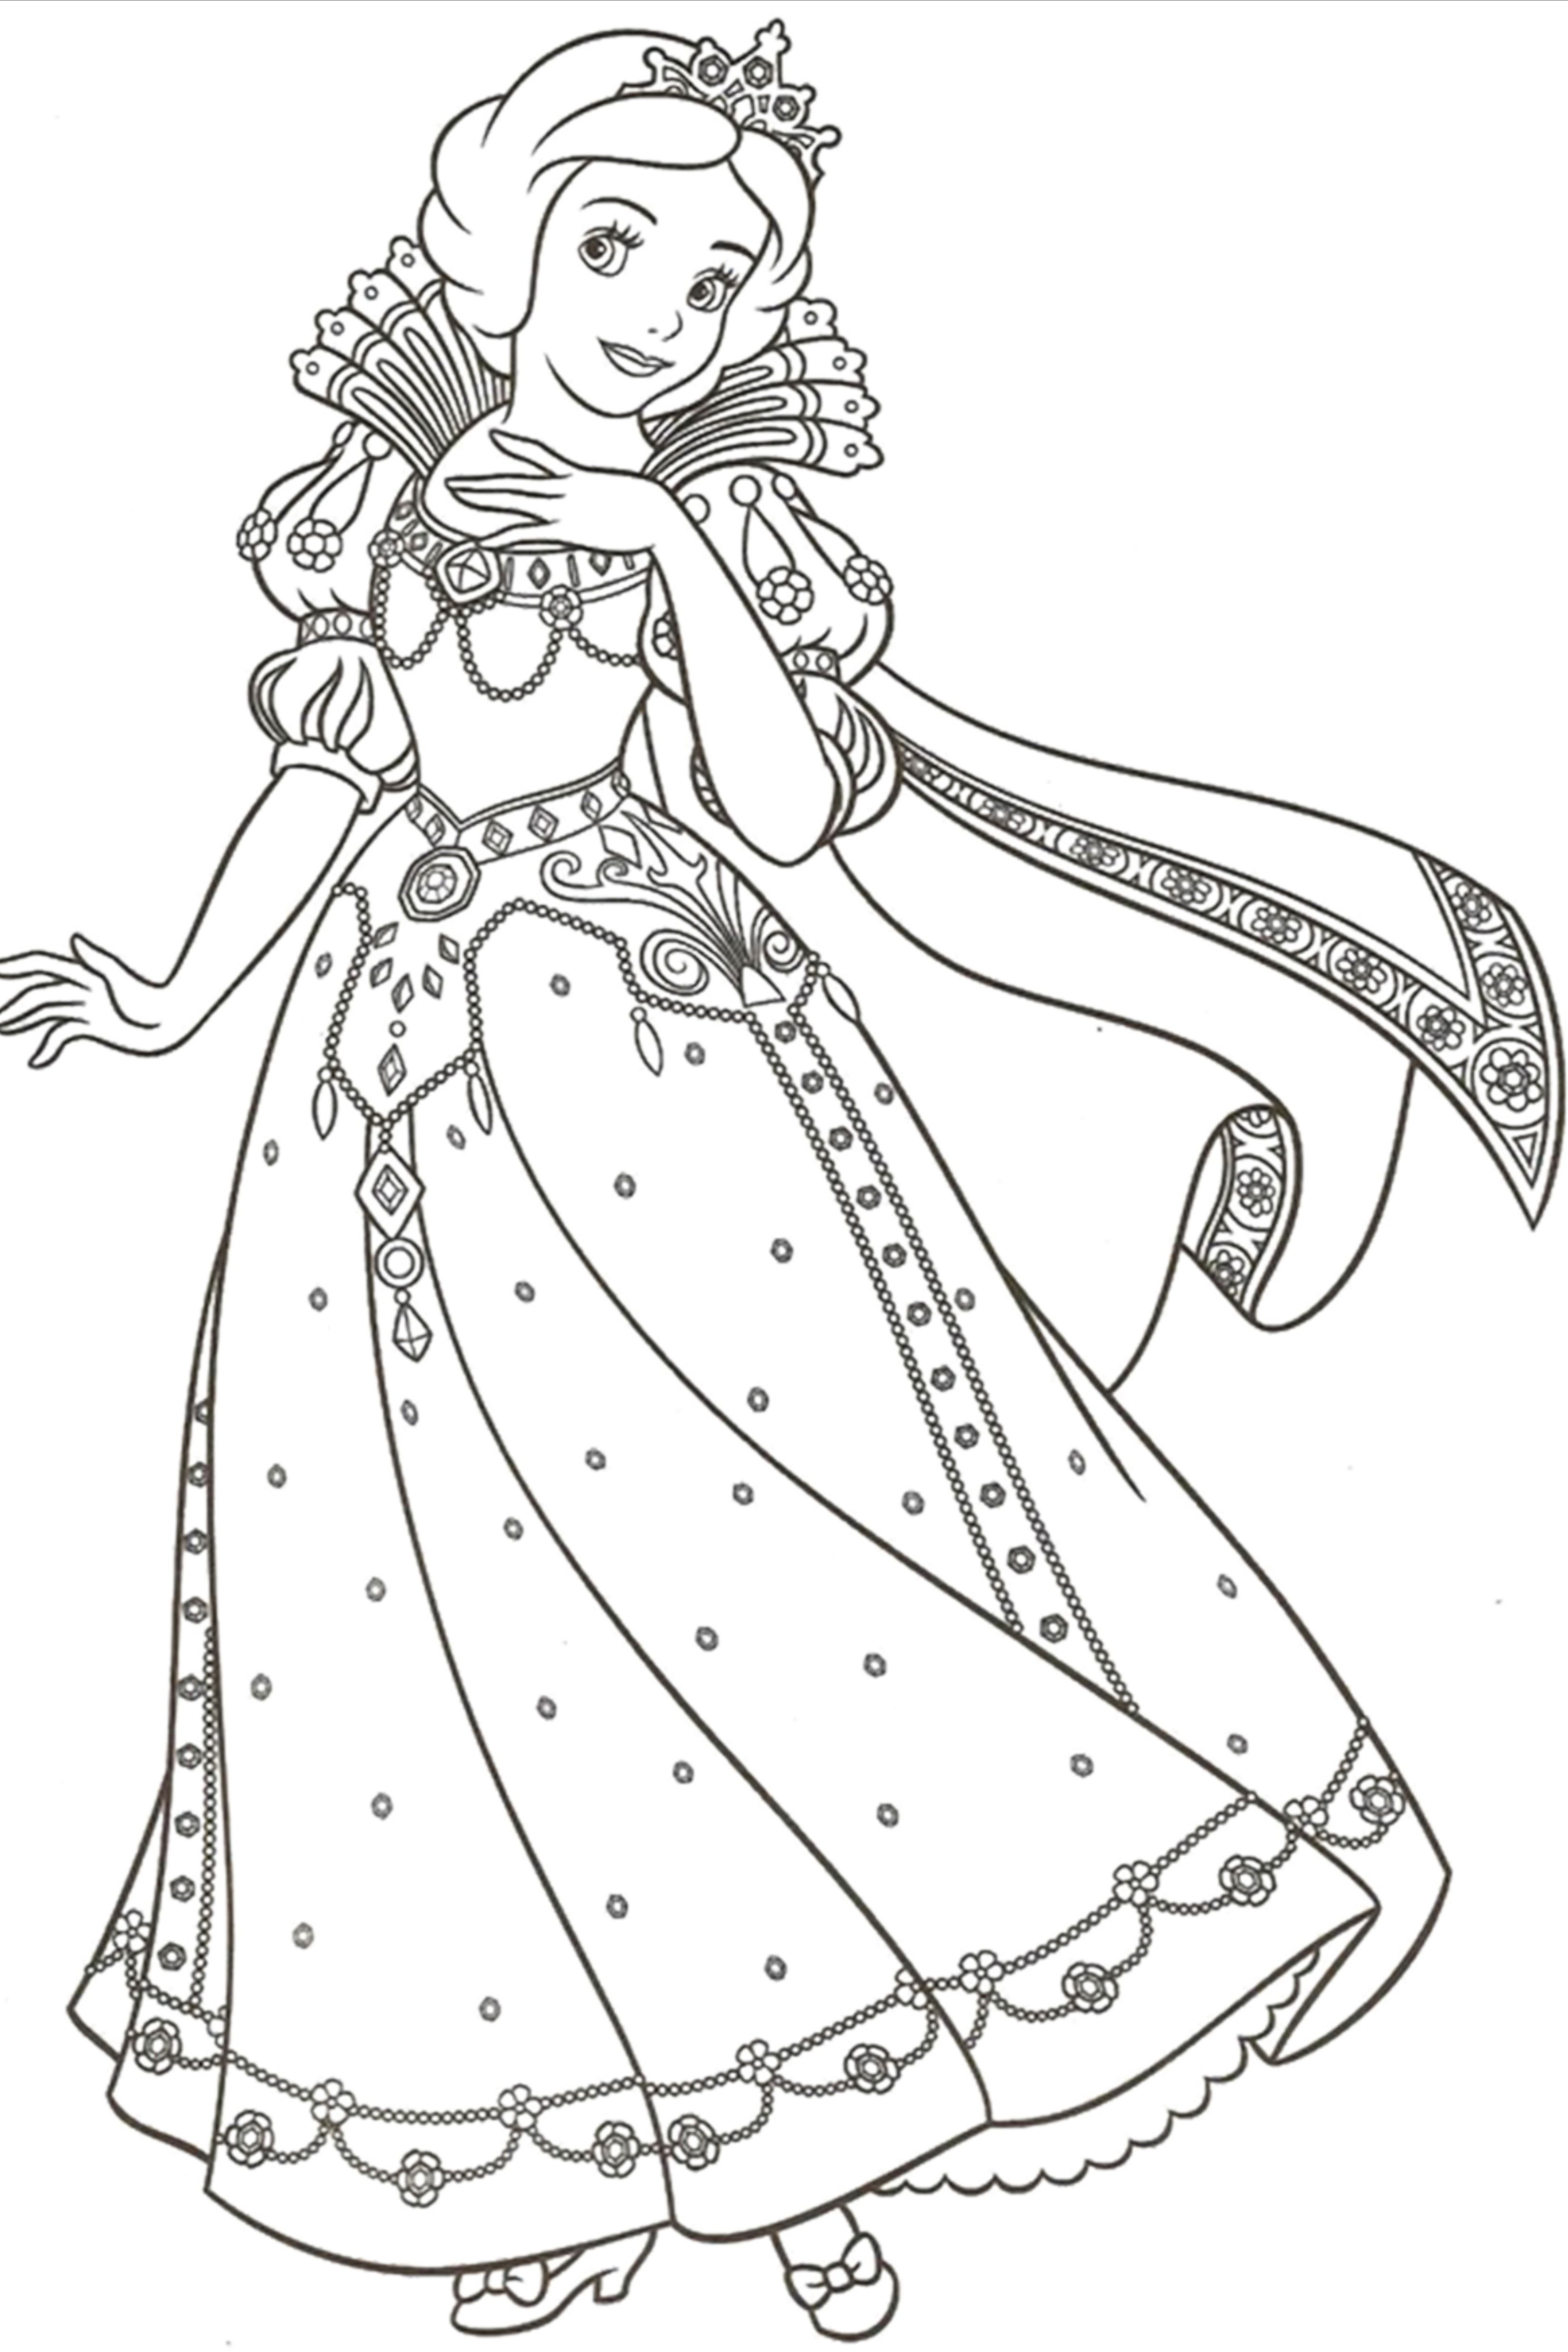 100 Princess Coloring Pages For Kids Disney Princess Coloring Pages Princess Coloring Pages Cinderella Coloring Pages